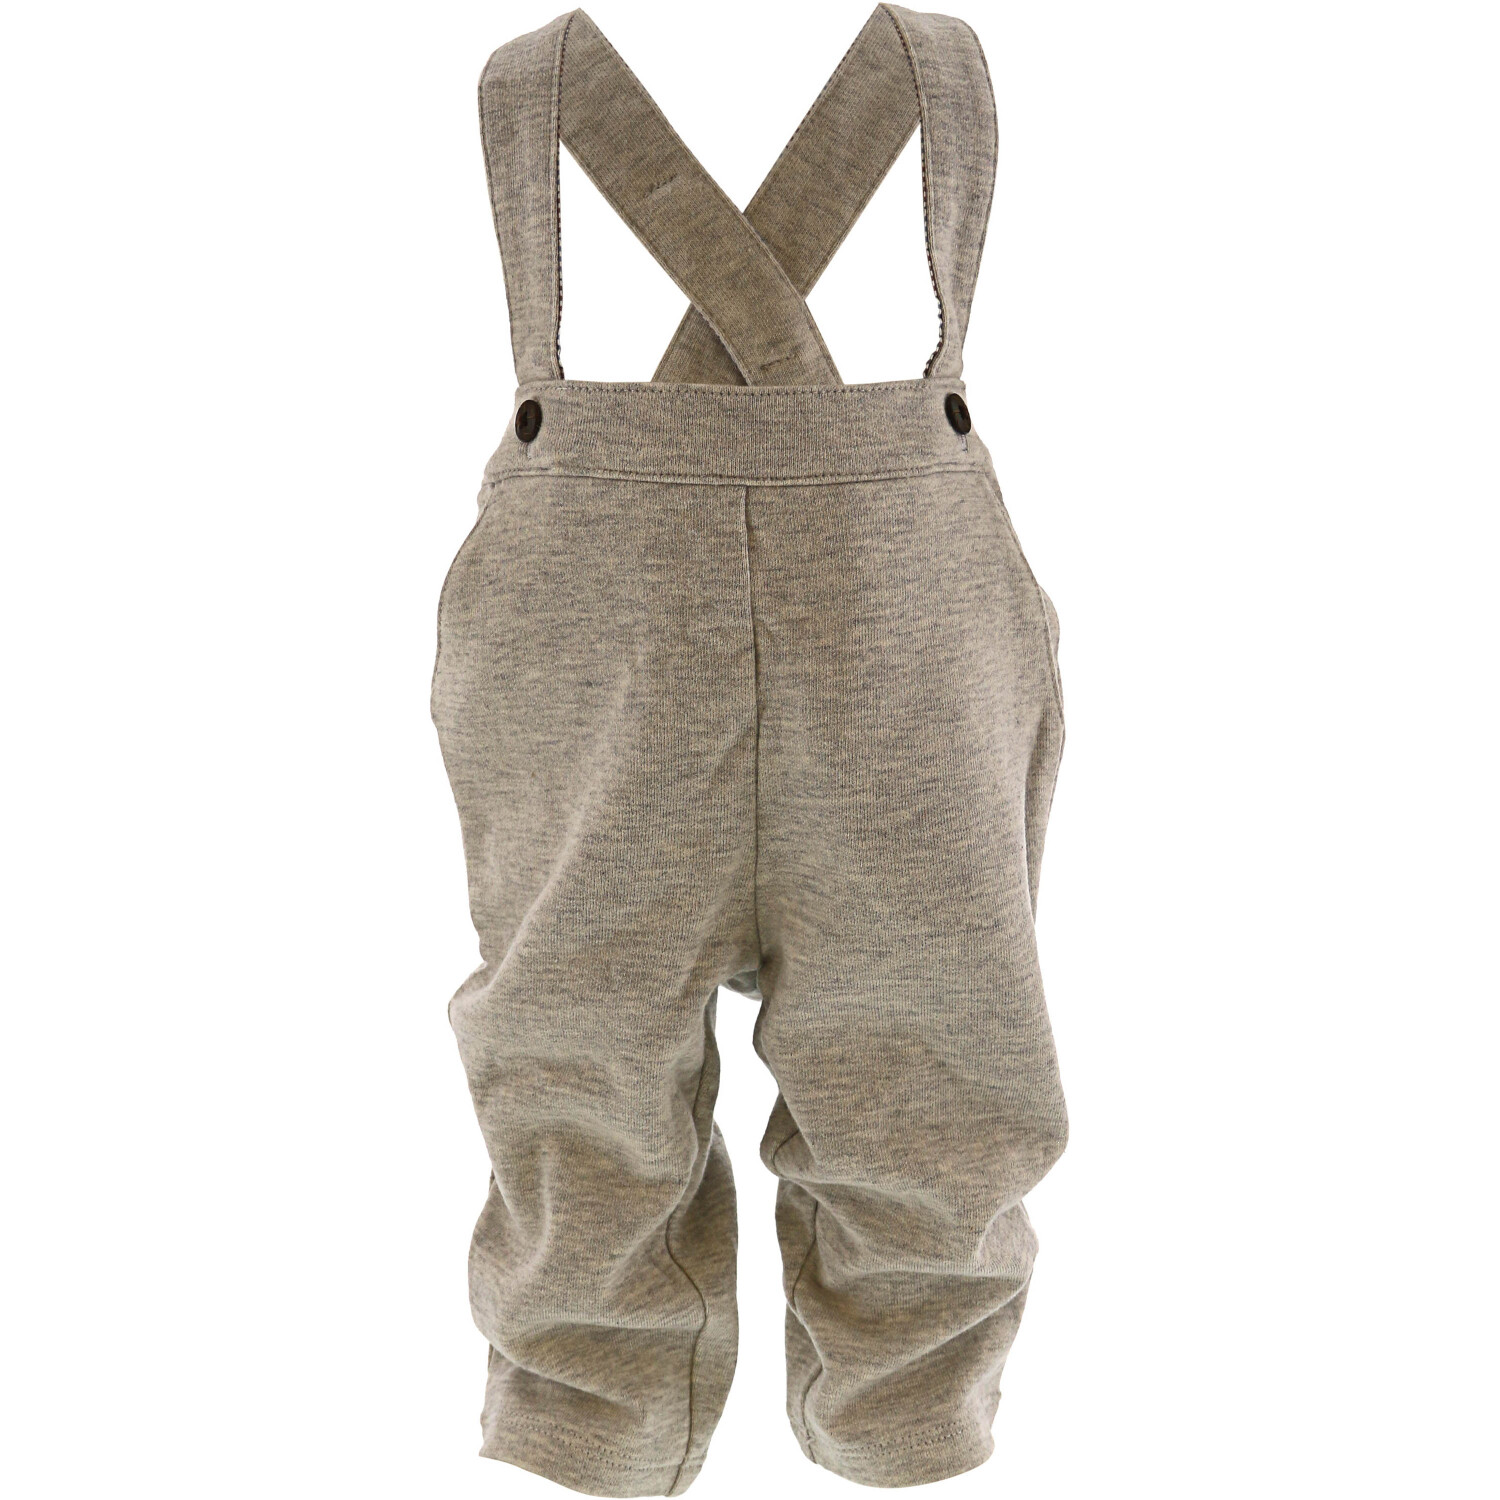 Janie And Jack Boy's Heather Grey Knit Suspender Pant Pants - 3-6 Months